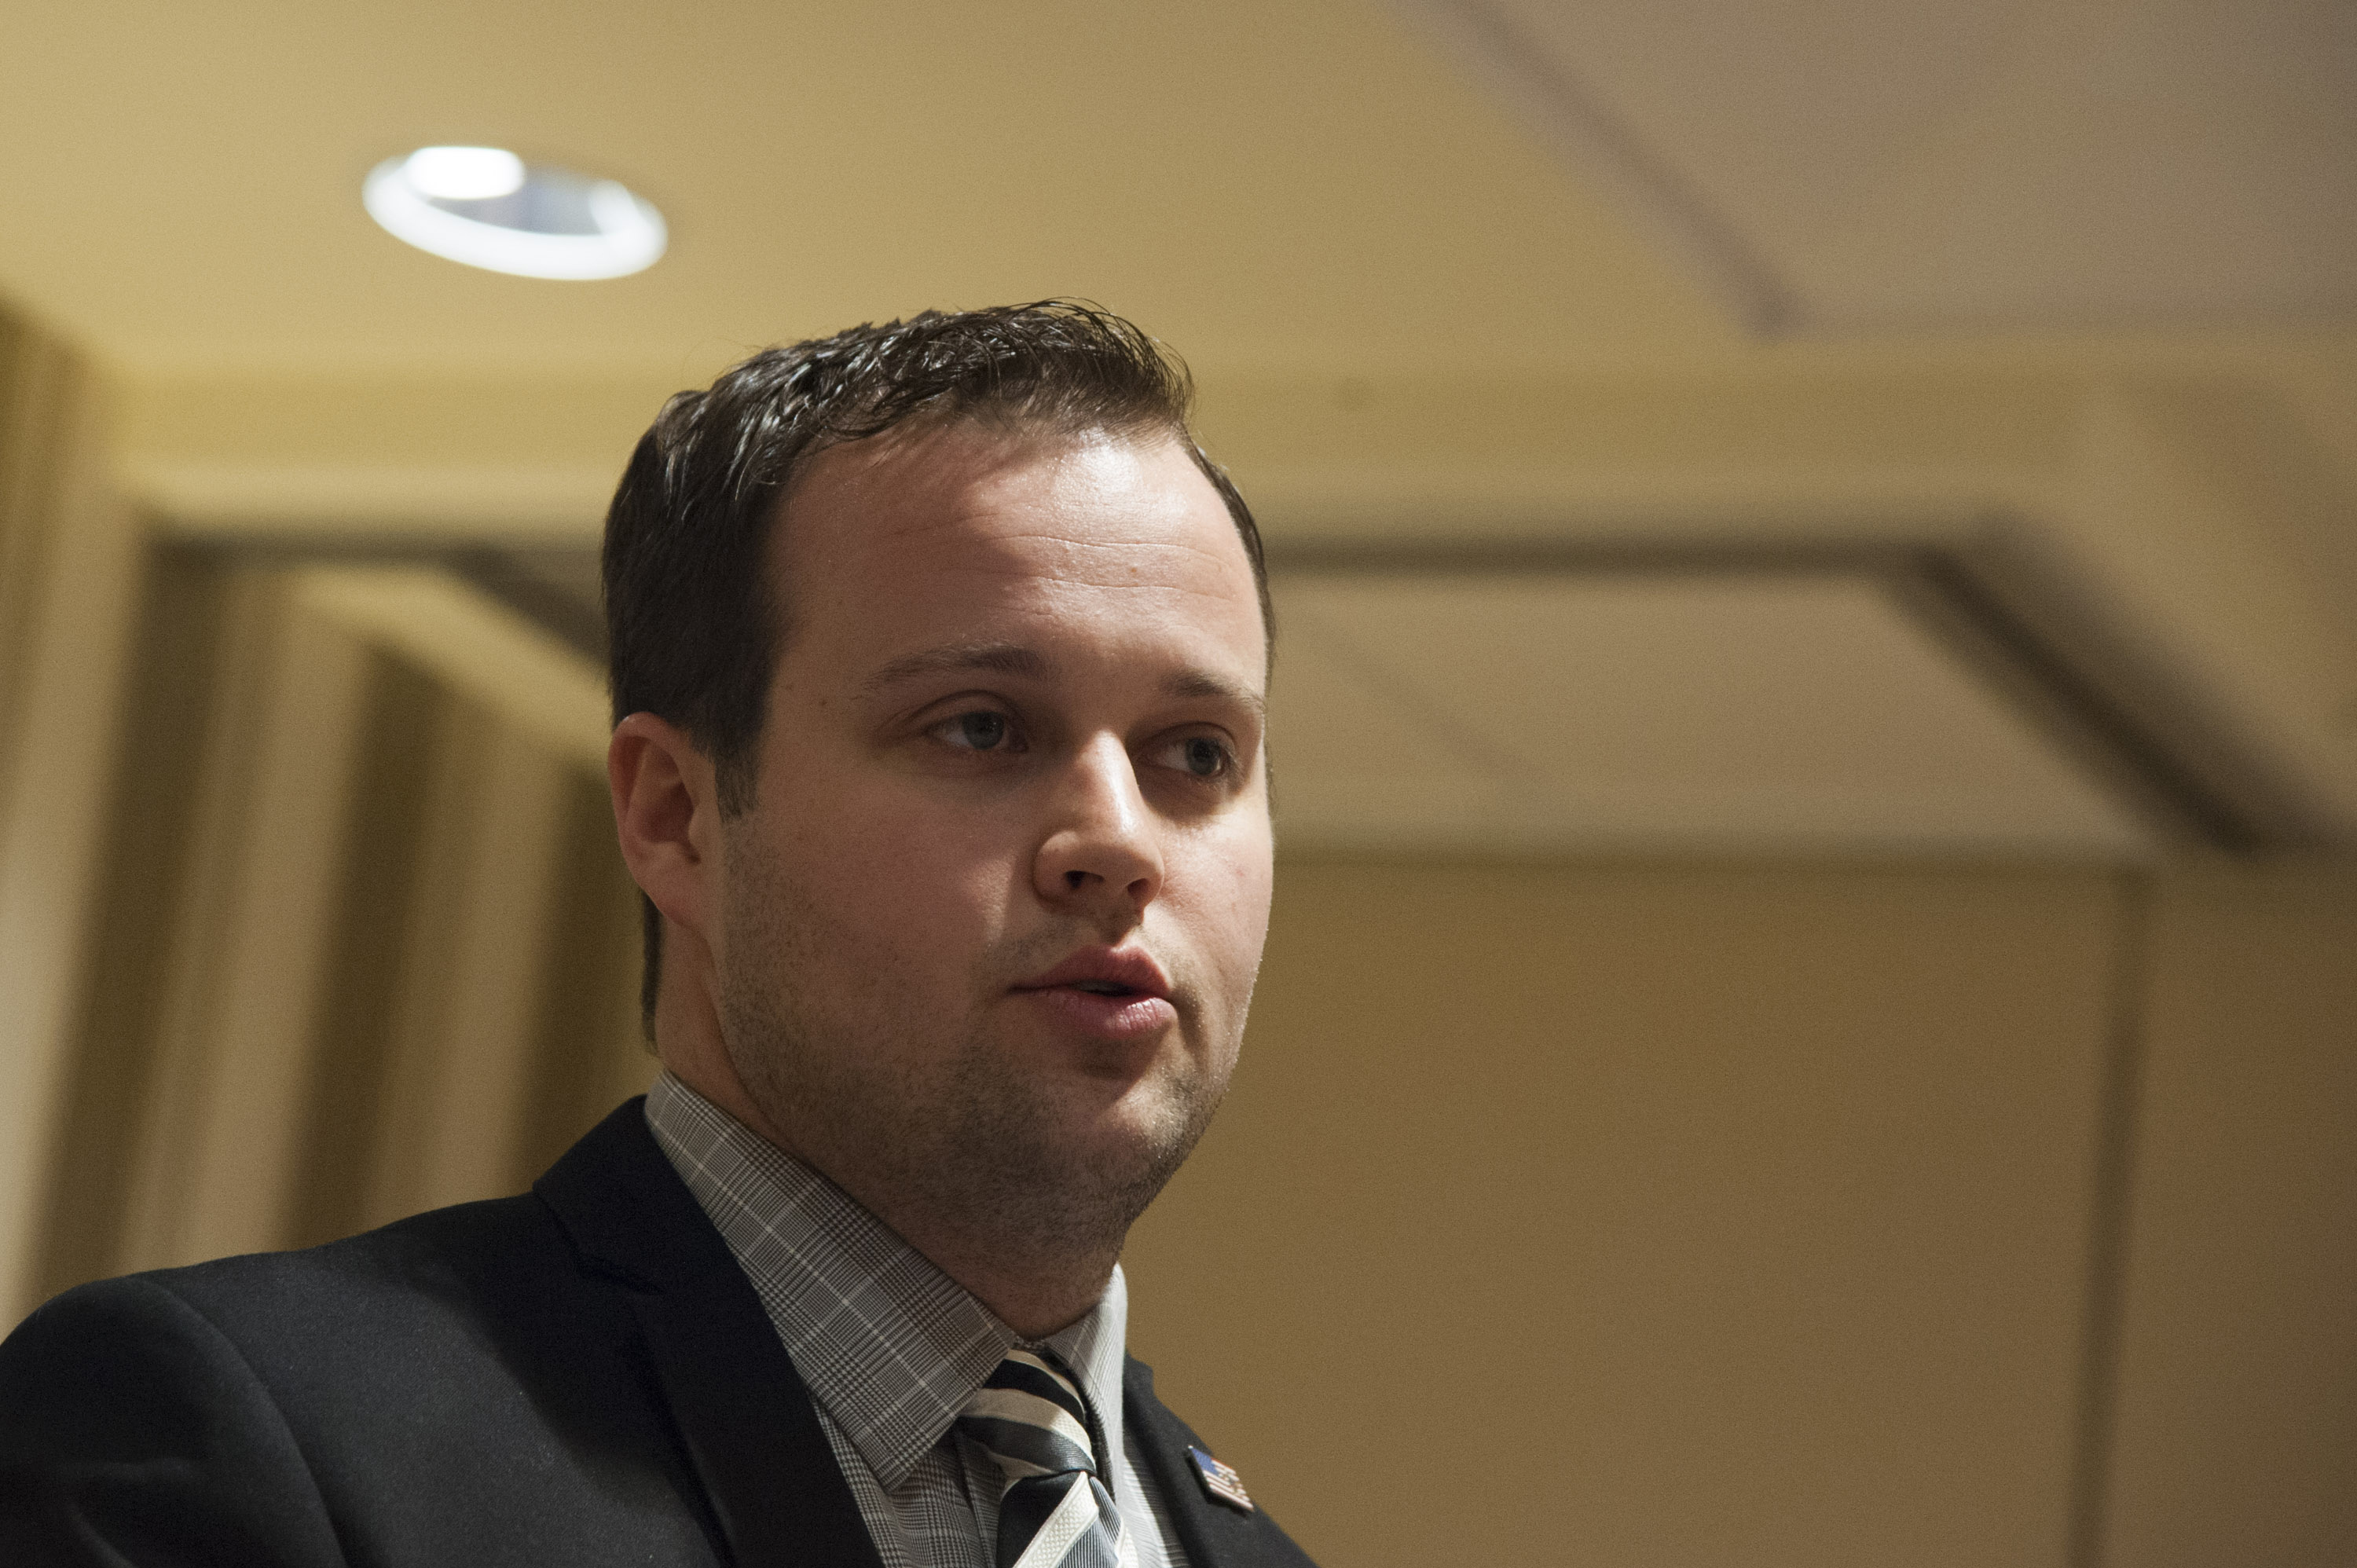 Josh Duggar speaks during the 42nd annual Conservative Political Action Conference (CPAC) at the Gaylord National Resort Hotel and Convention Center in National Harbor, Md., on Feb. 28, 2015.